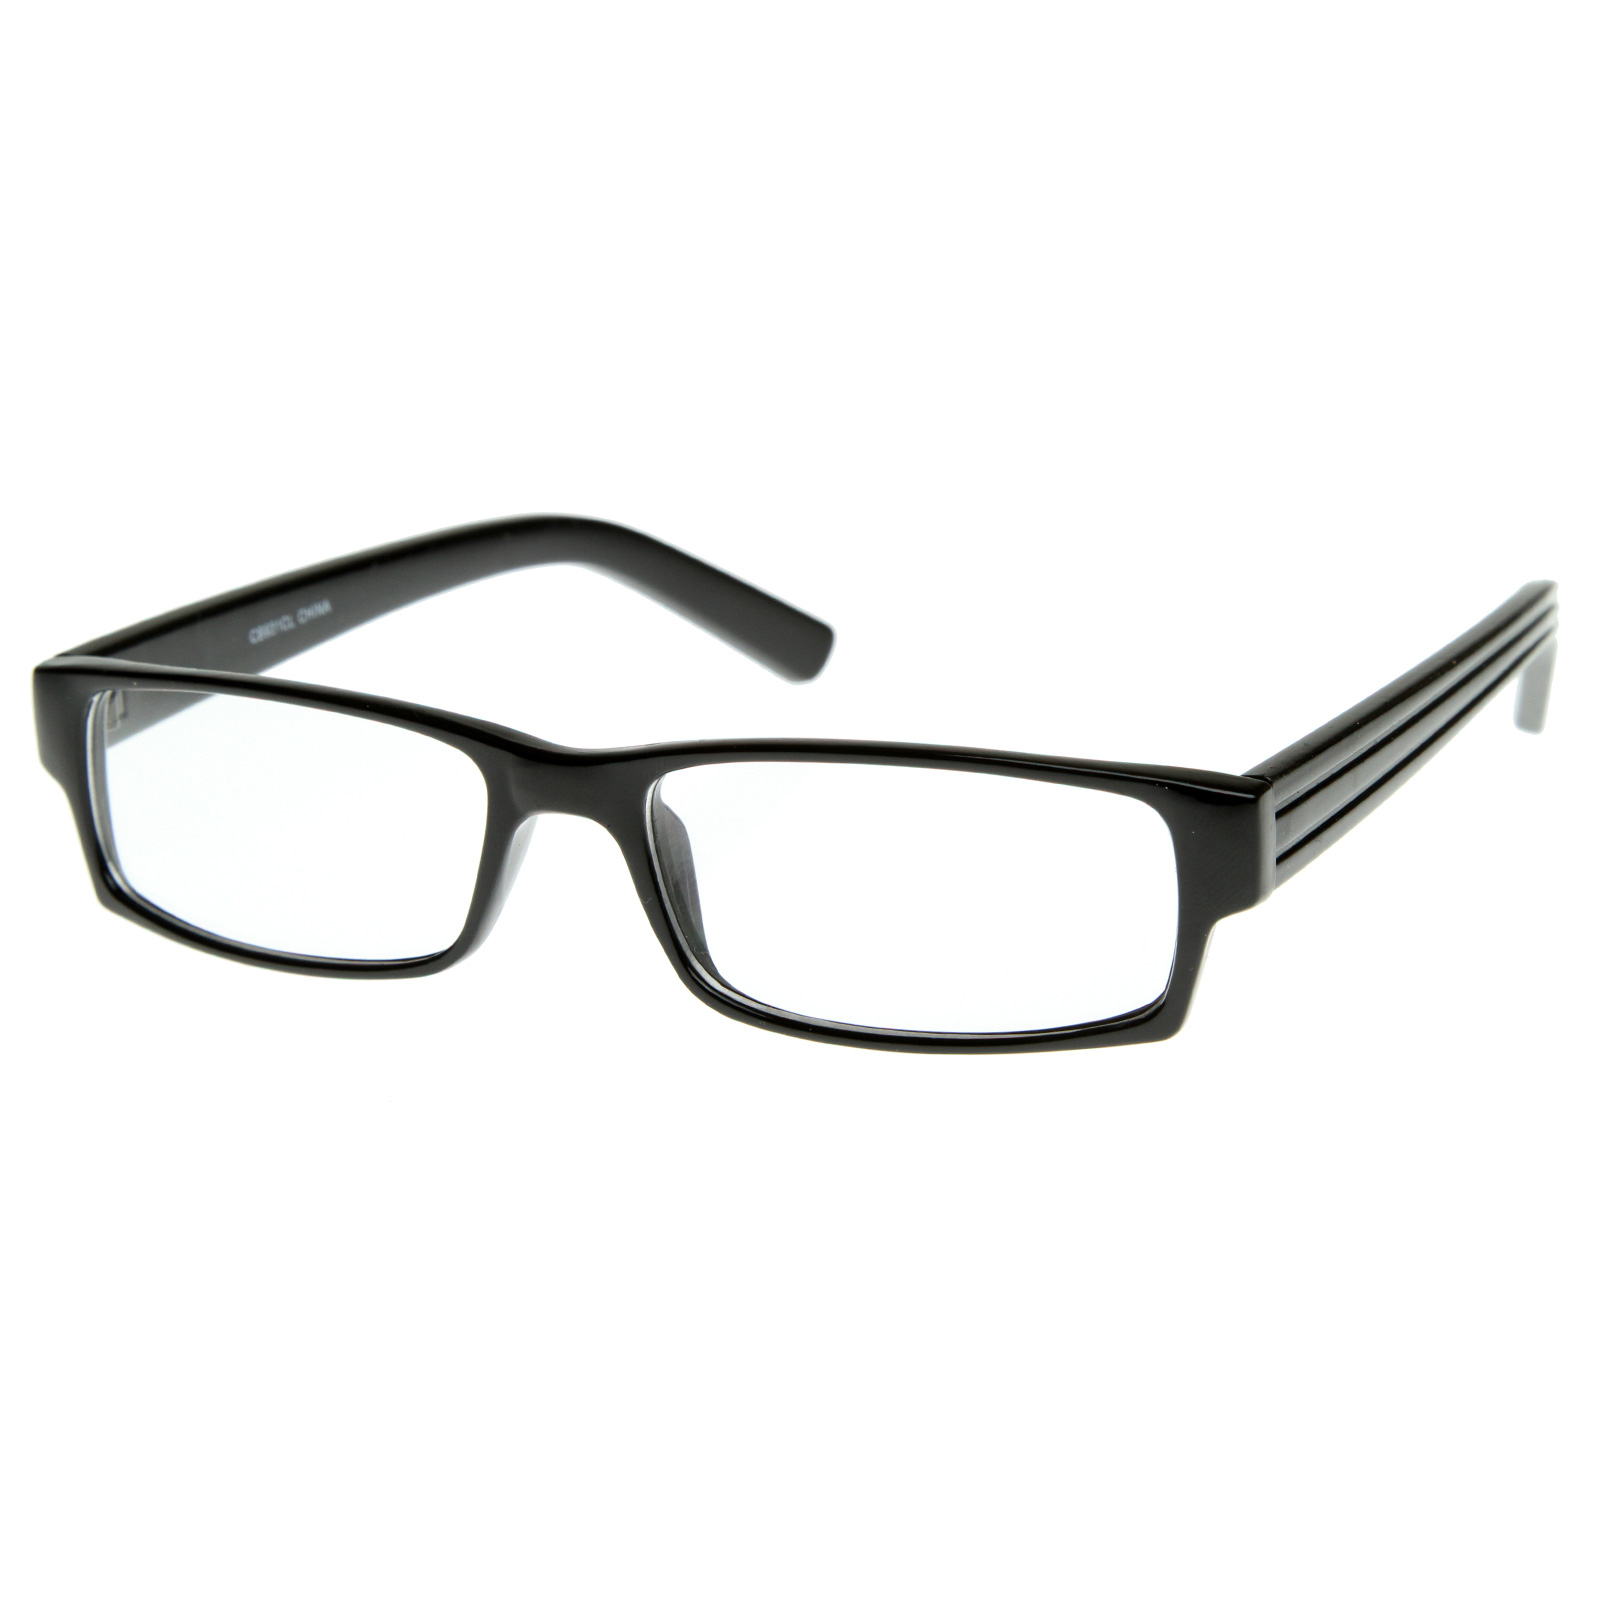 Plastic Glasses Frame Polish : Eyeglass frames: plastic, metal, or rimless? - Straight ...